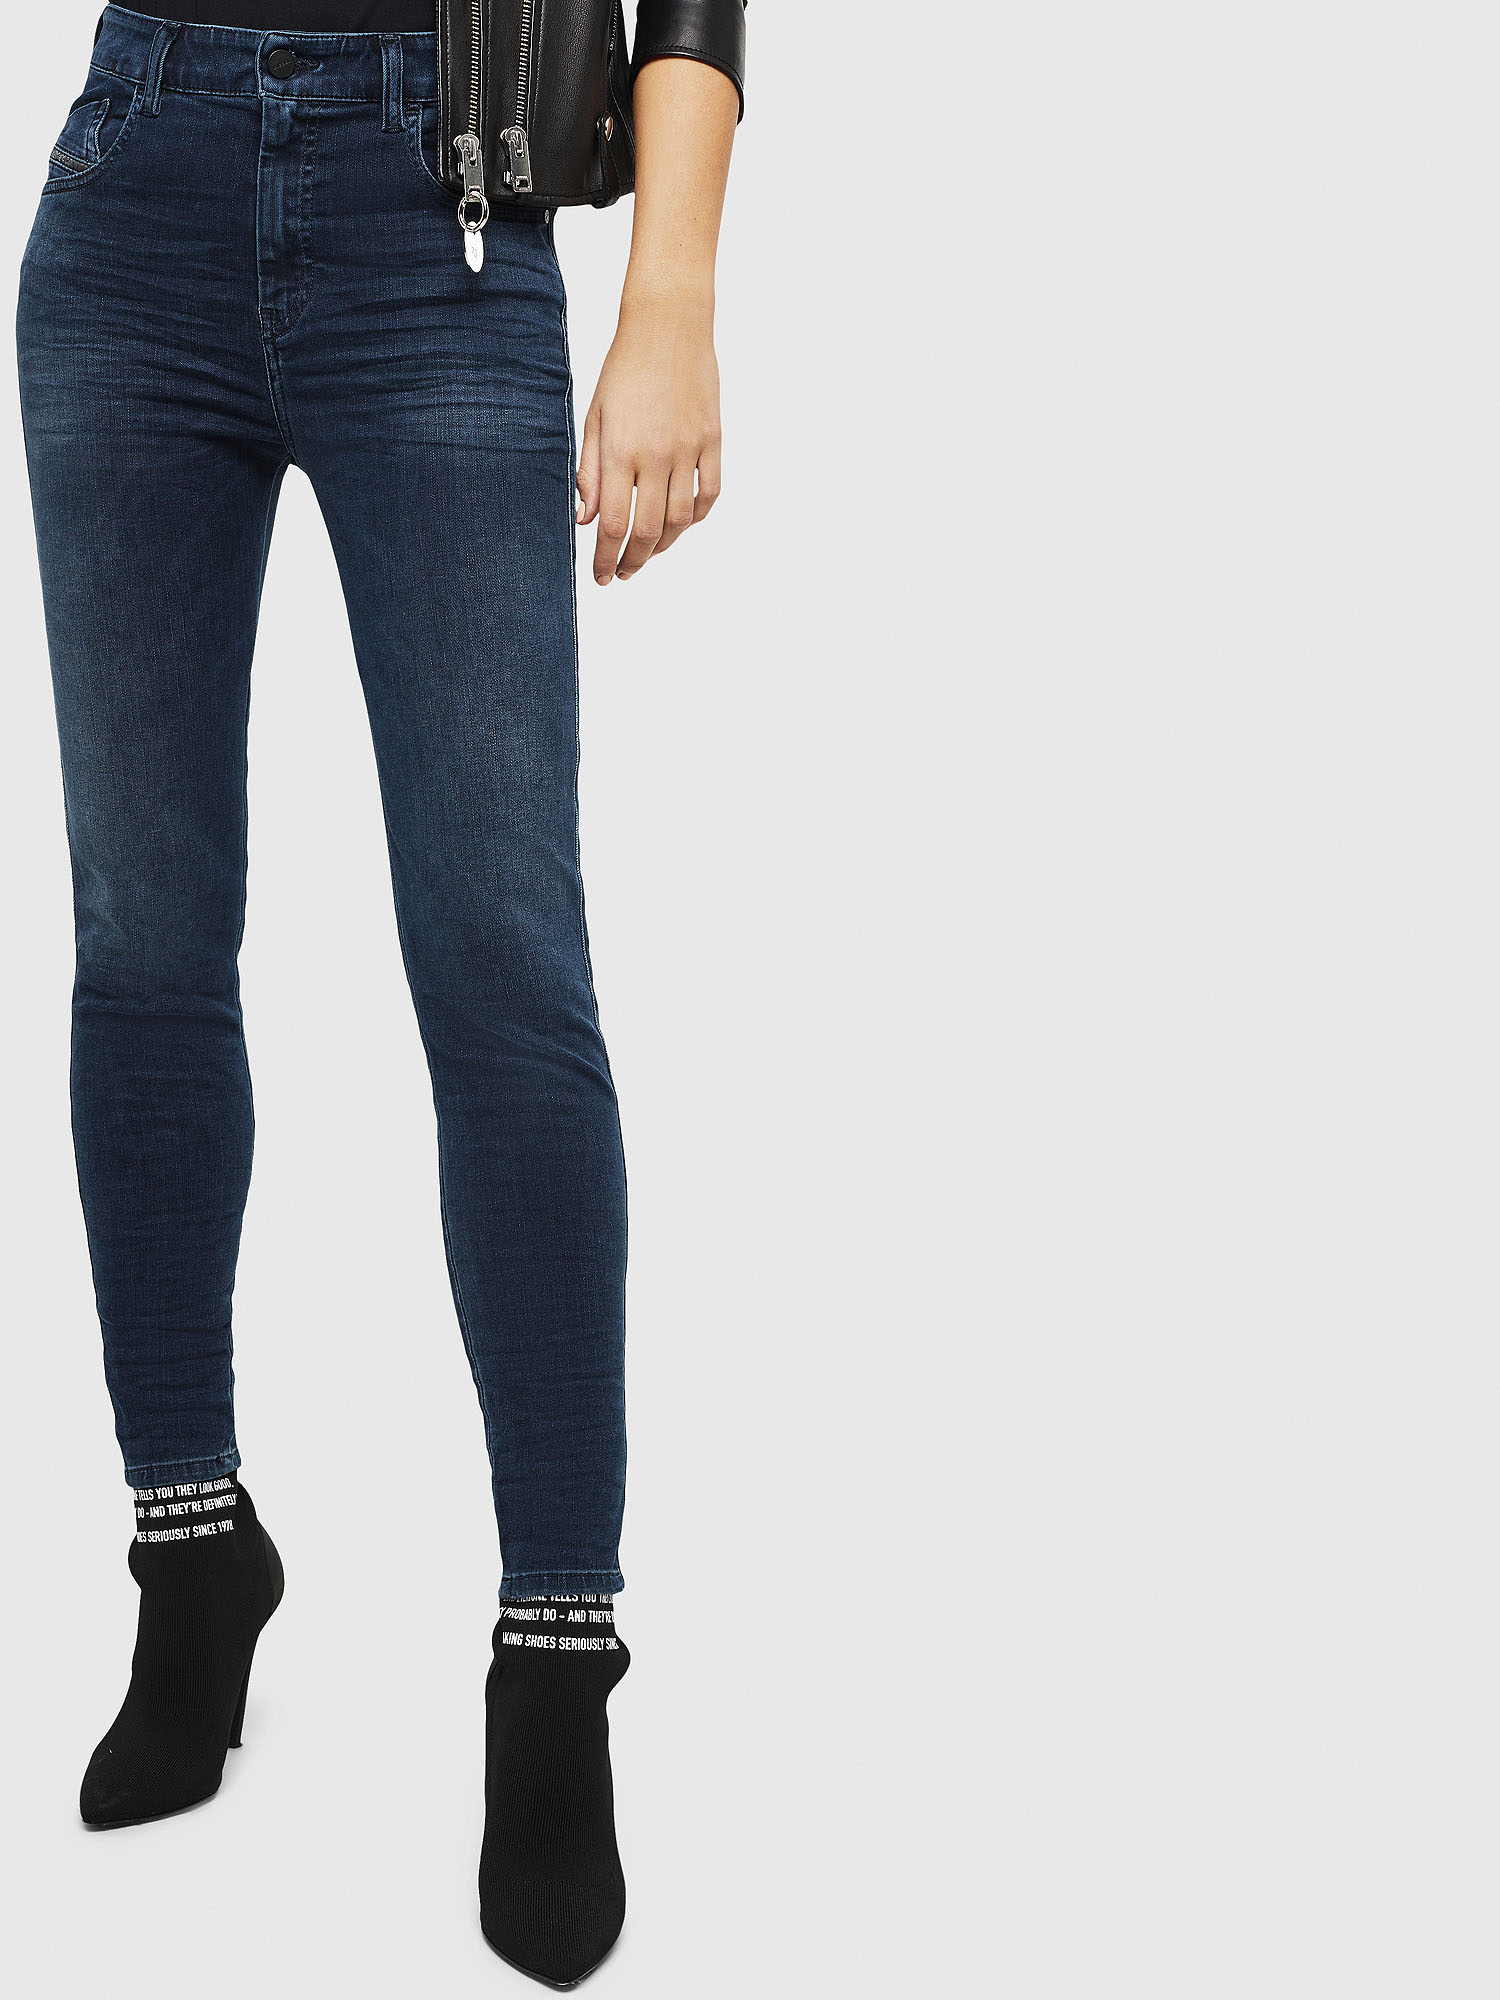 Diesel - Slandy High 084UT,  - Jeans - Image 1